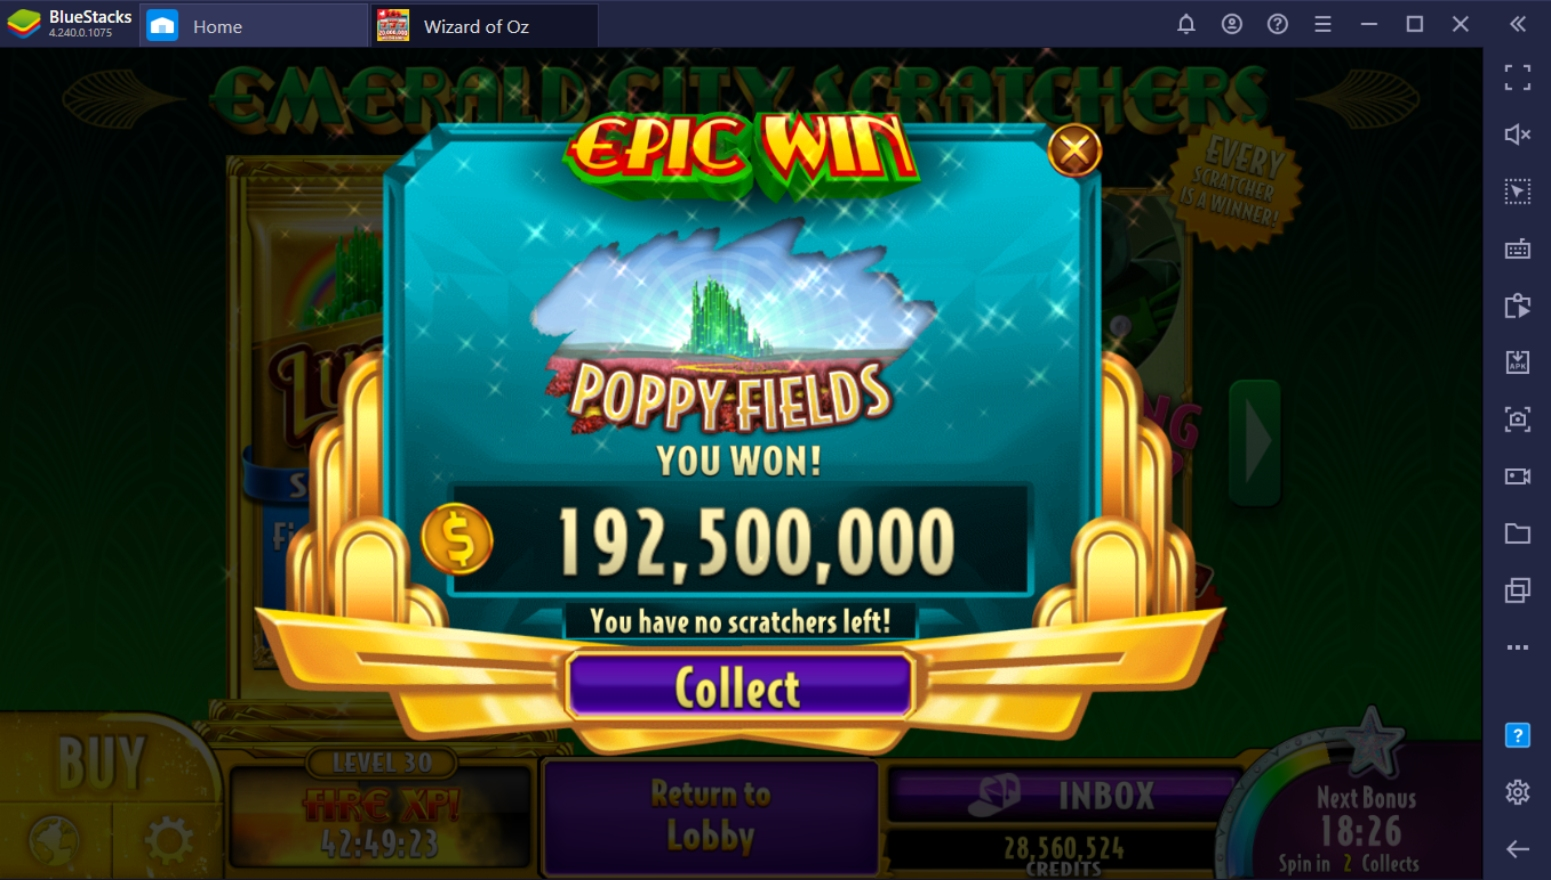 Fastest Way To Get Free Credits in Wizard of Oz Casino on PC